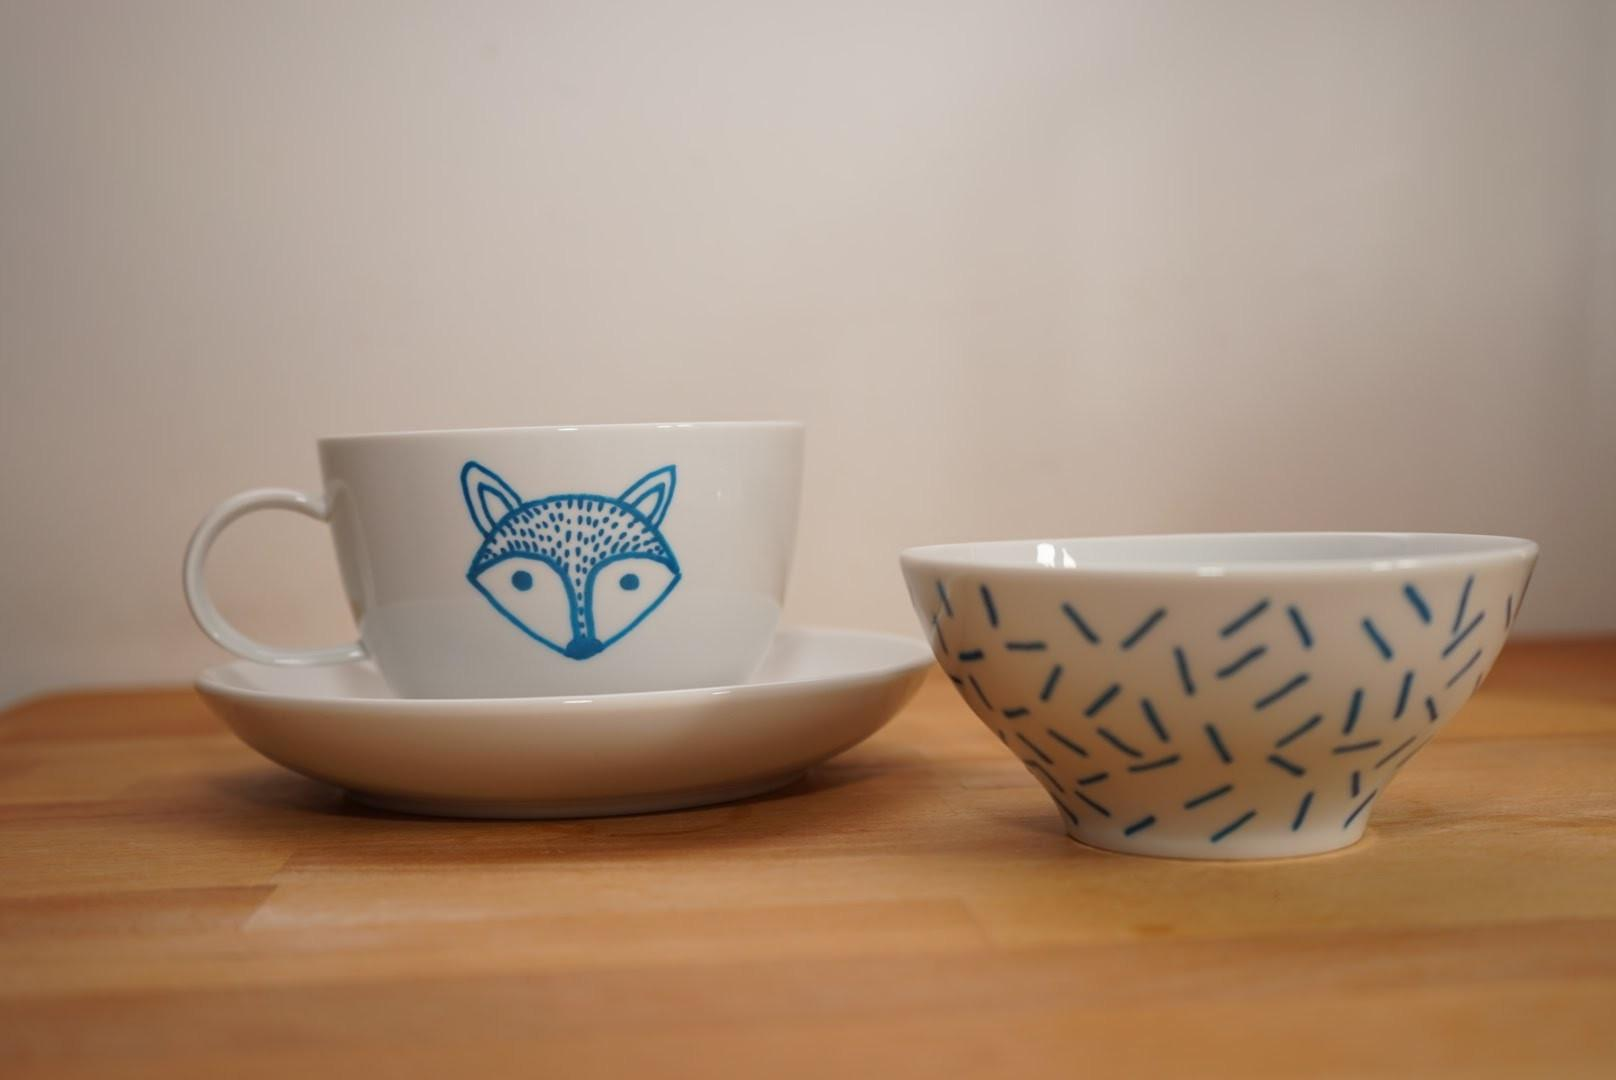 Diy Painted Fox Bowls Mugs Cups Porcelain Pen Easy